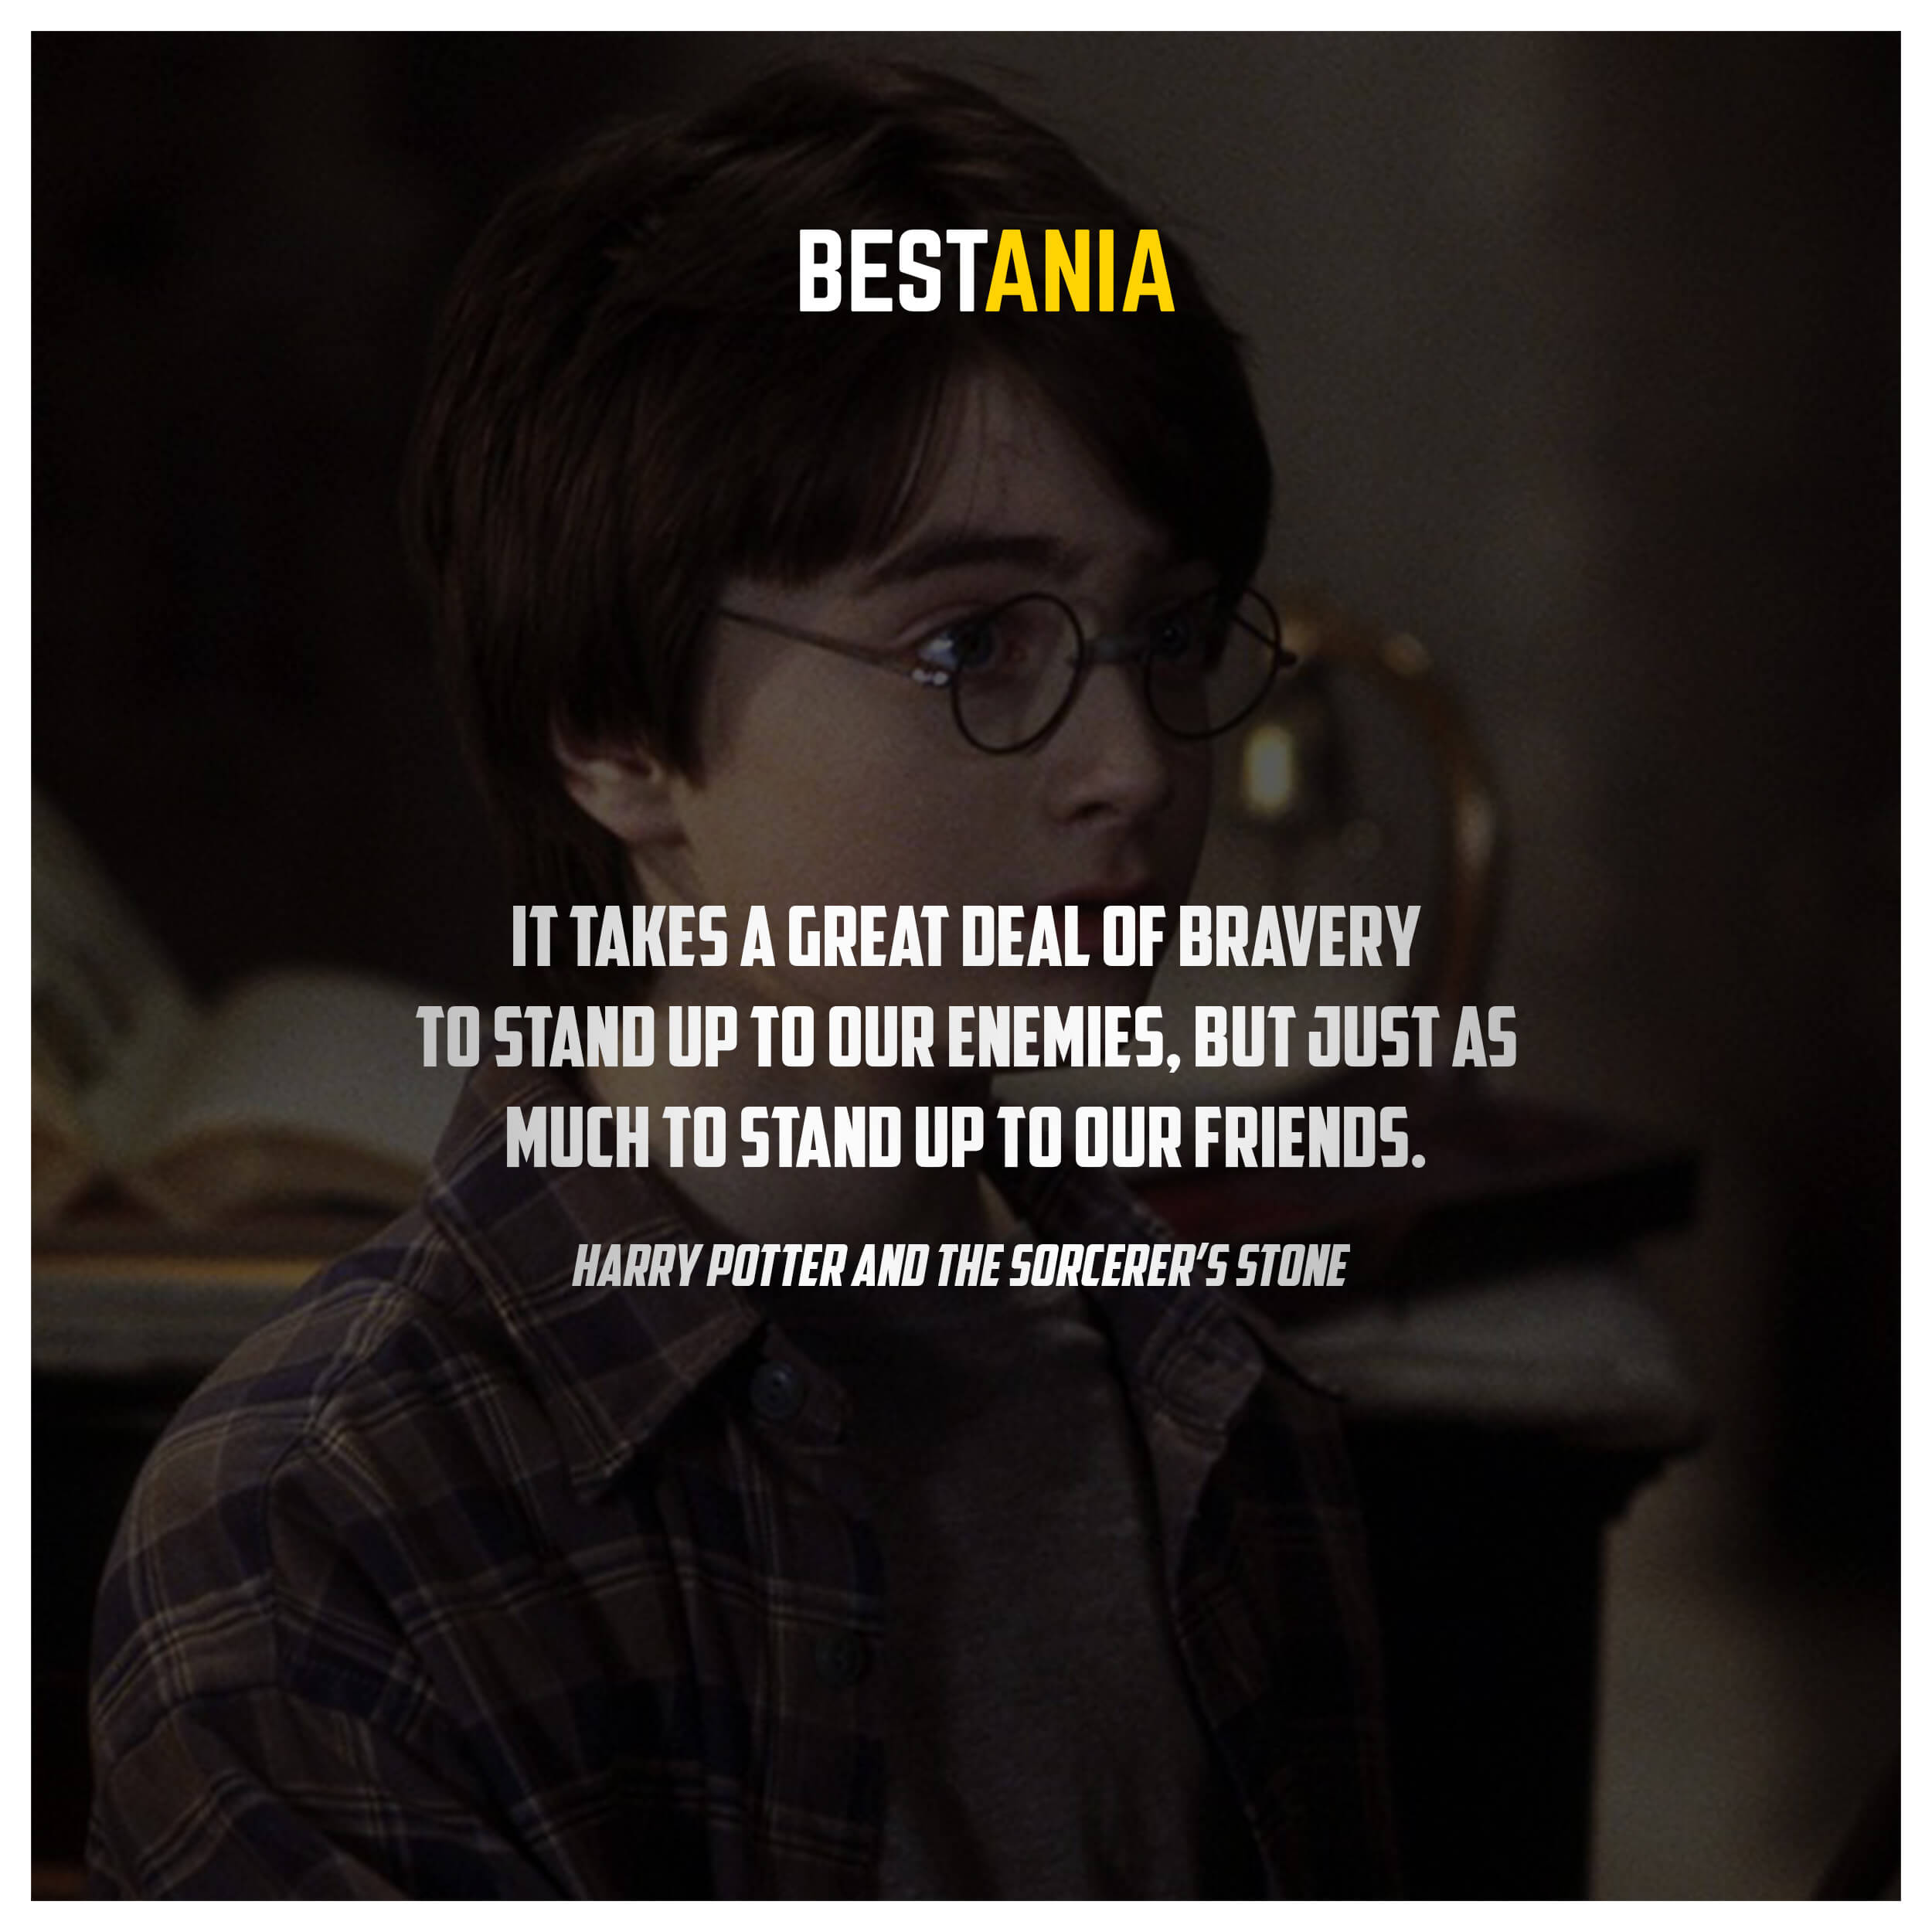 It takes a great deal of bravery to stand up to our enemies, but just as much to stand up to our friends. – Harry Potter and the Sorcerer's Stone